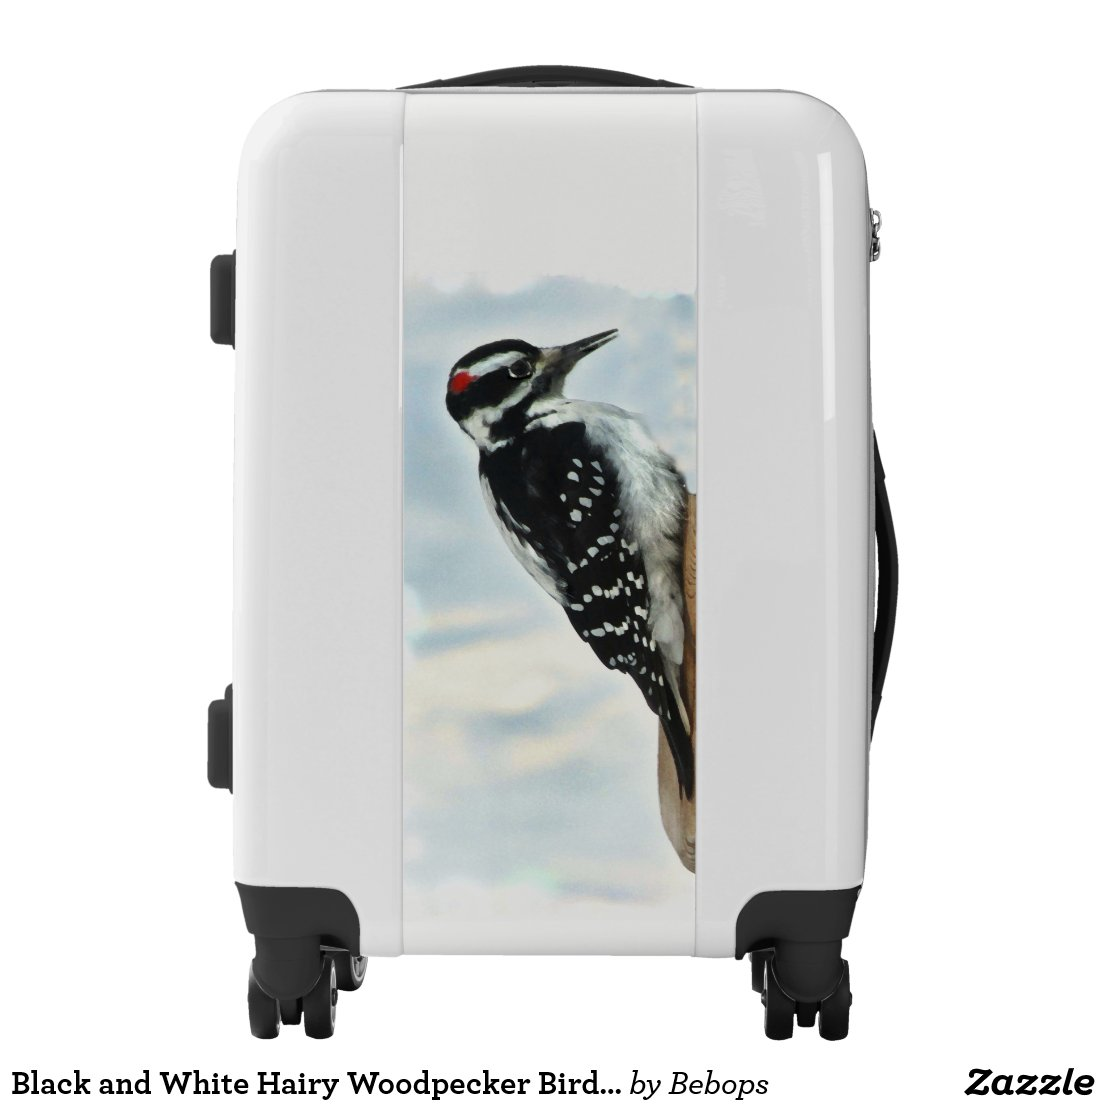 Black and White Hairy Woodpecker Bird Luggage